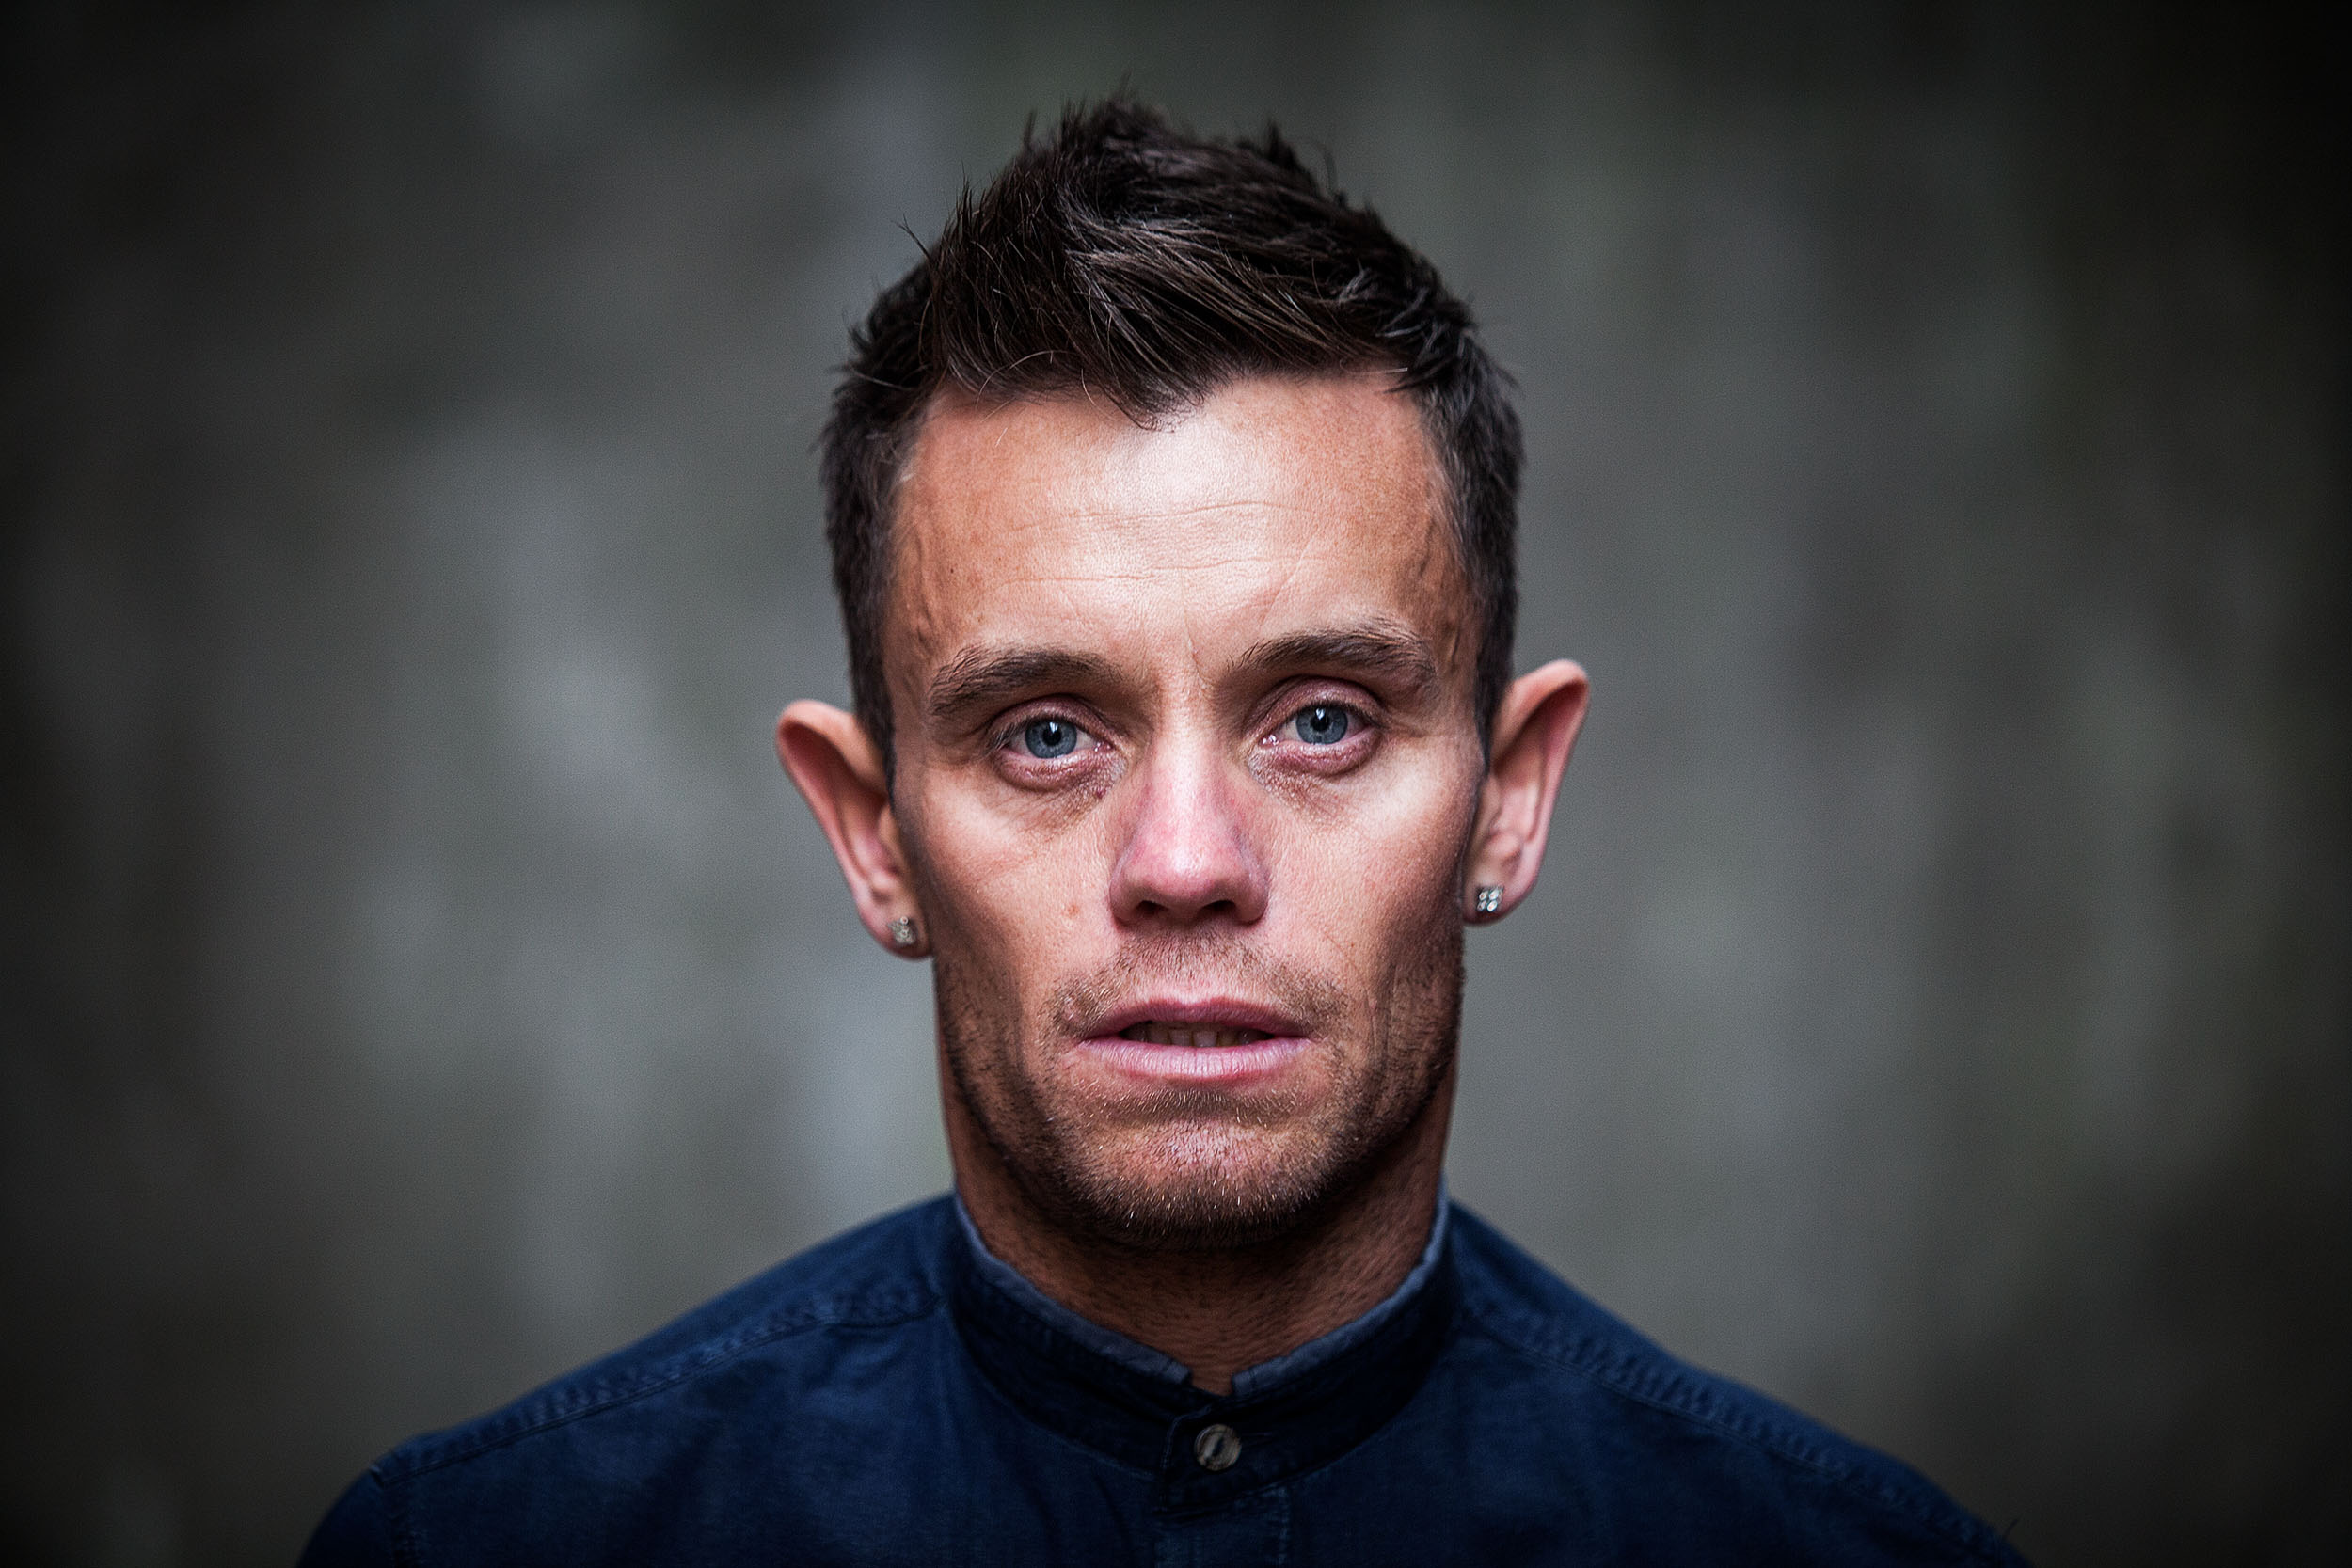 """""""The money, the football... it ended up getting too much, where I thought to myself: 'I can't carry on here.' It was horrible"""" Lee Hendrie, former Premiership footballer. He attempted suicide twice when bankrupt"""